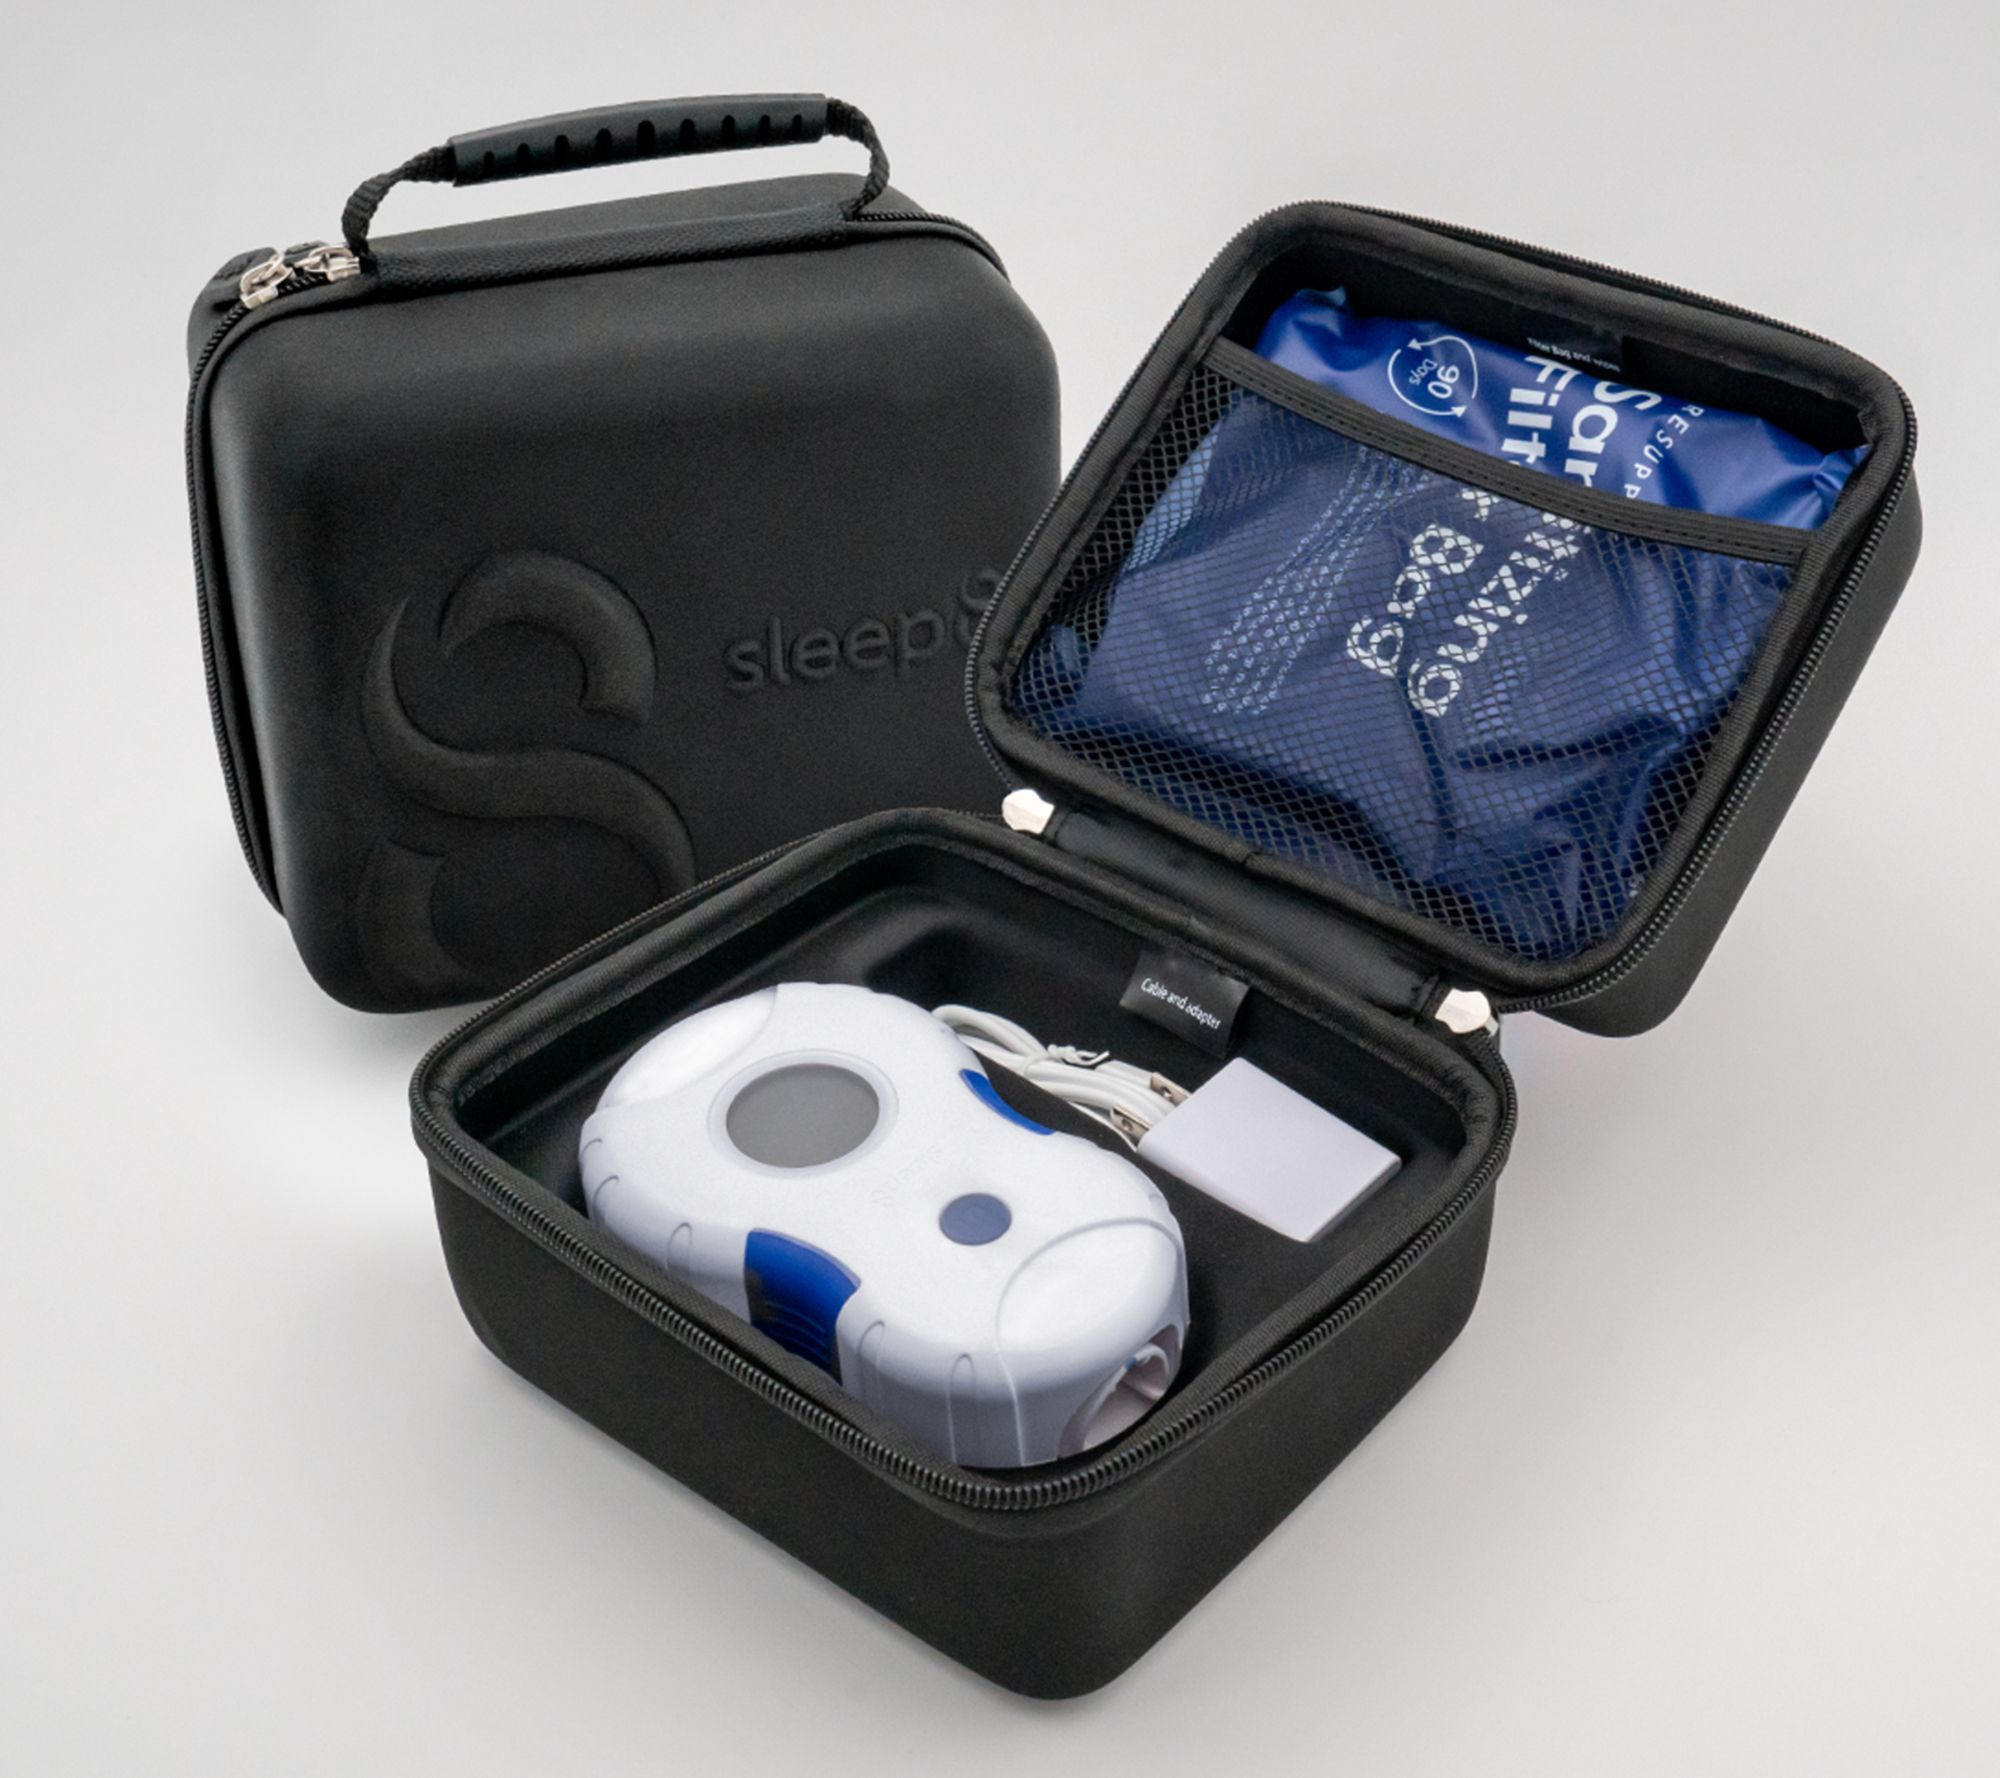 Untitled In 2020 Cpap Machine Cpap Cpap Cleaning